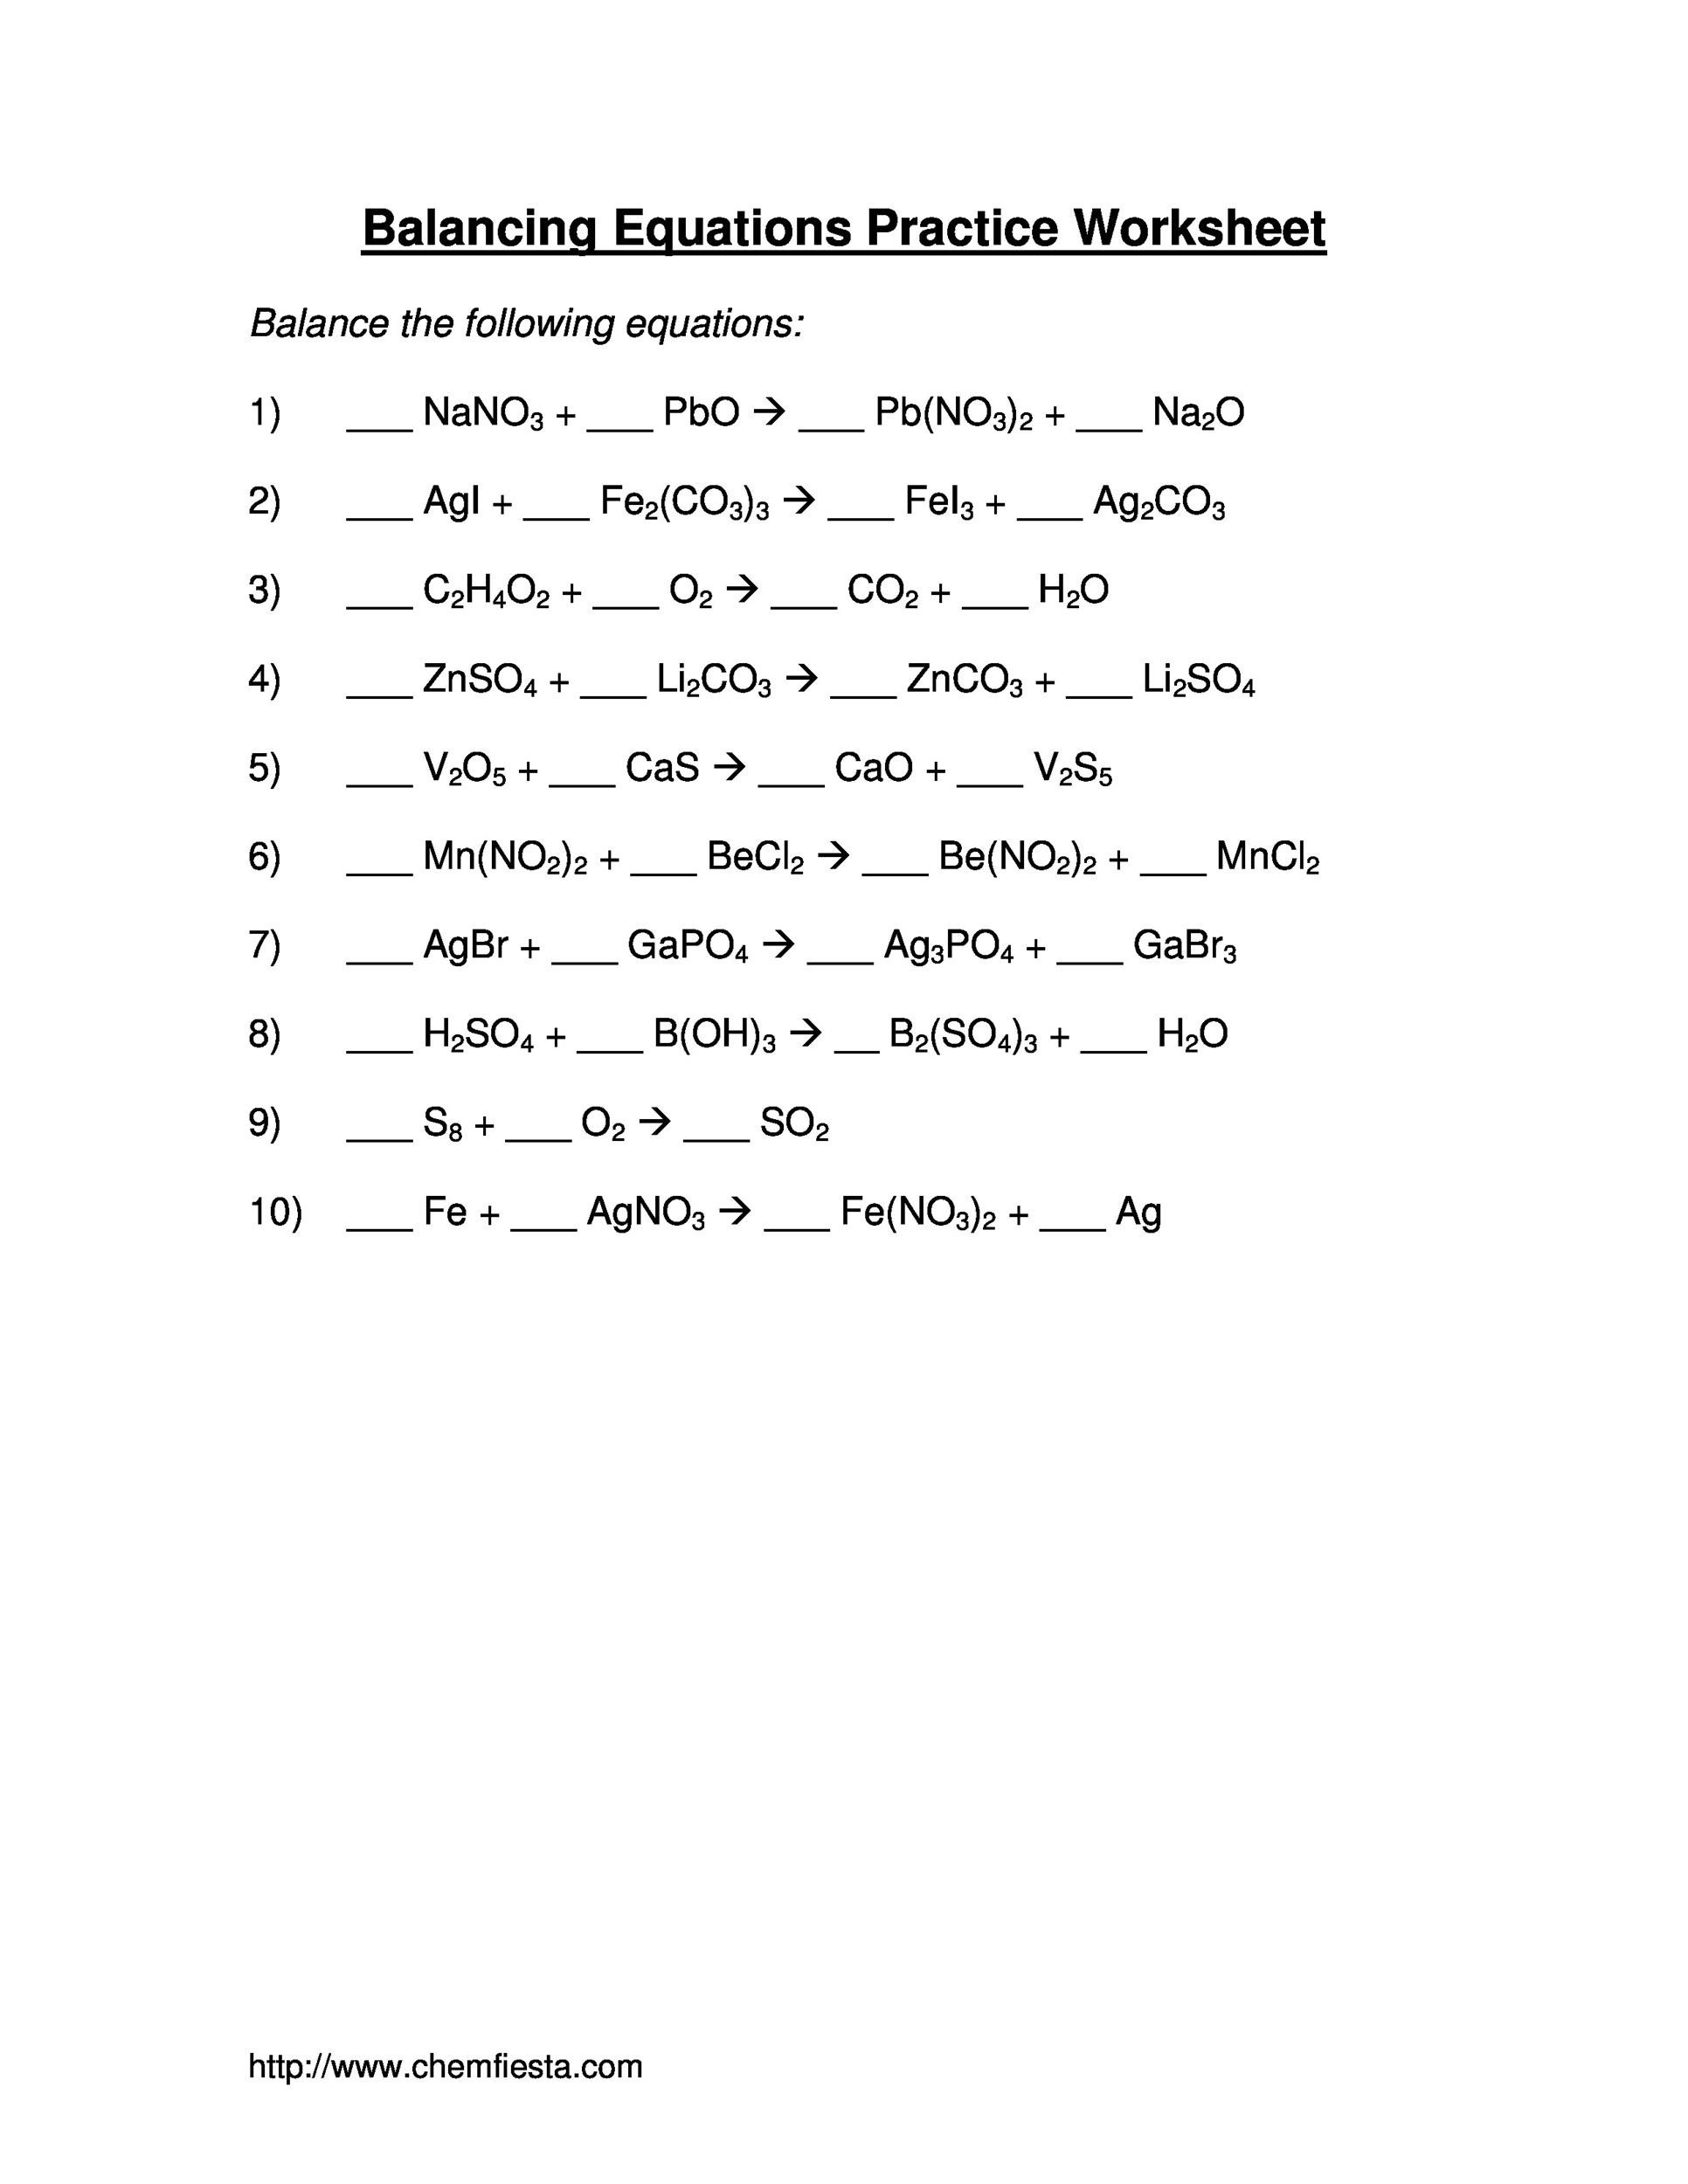 Balancing Equation Practice Worksheet Delibertad – Balancing Equations Worksheet Answer Key